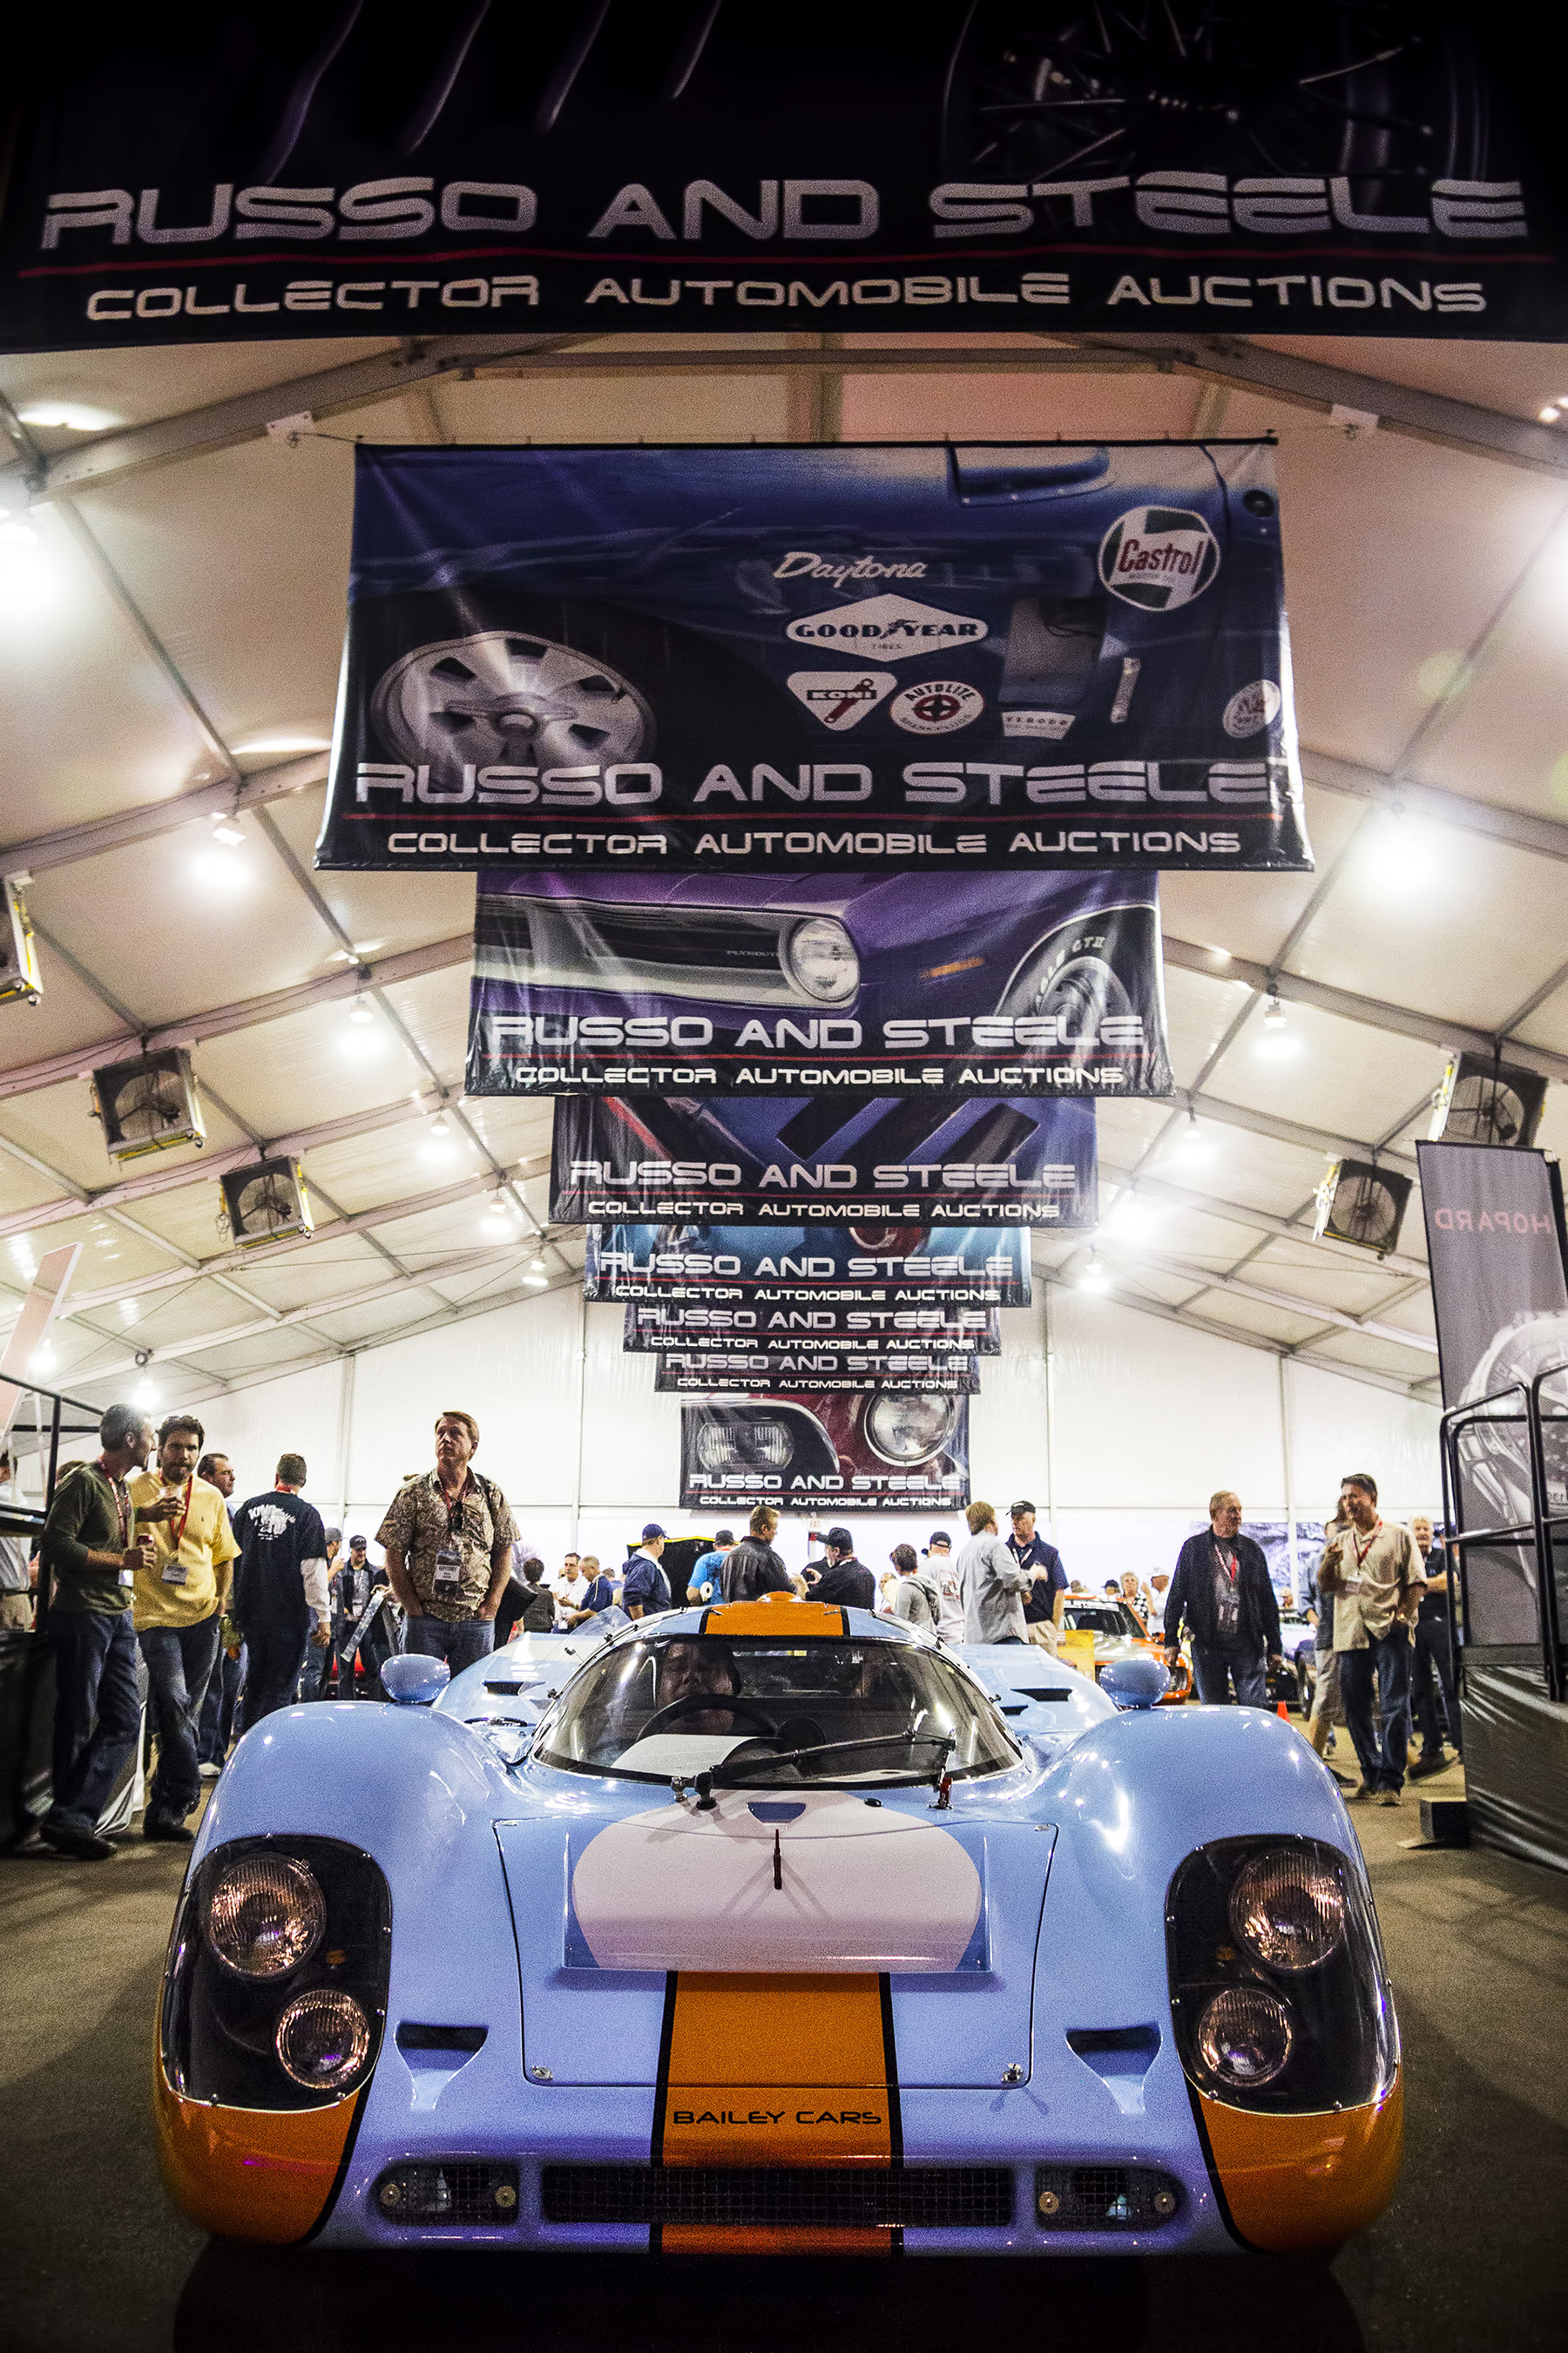 World Renowned Collector Car Auction Company Announces Dates For - Pavilions at talking stick car show